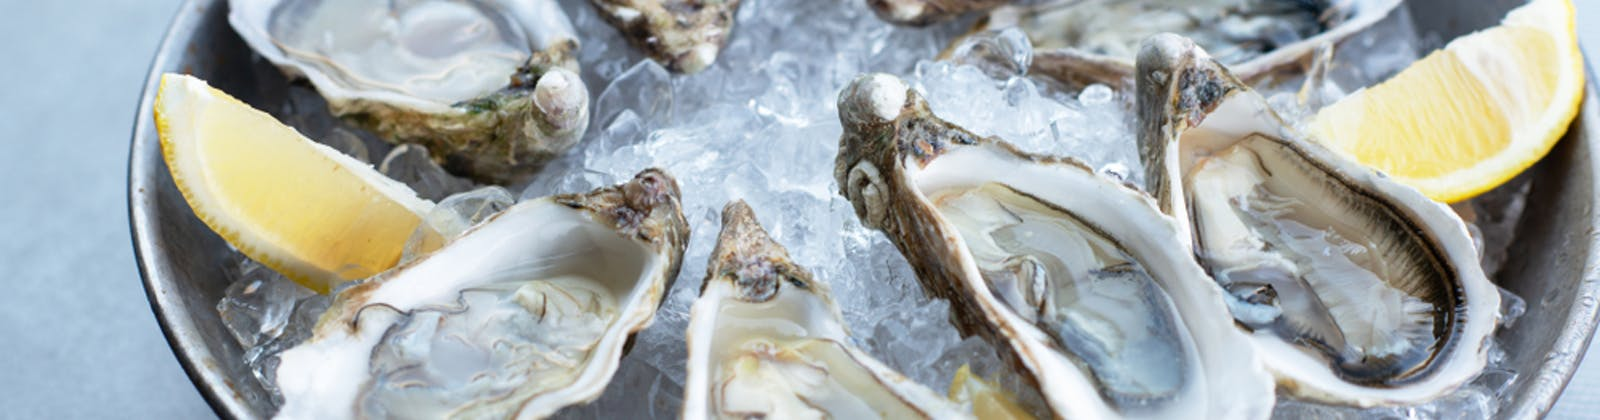 Oysters In Ice With Lemon